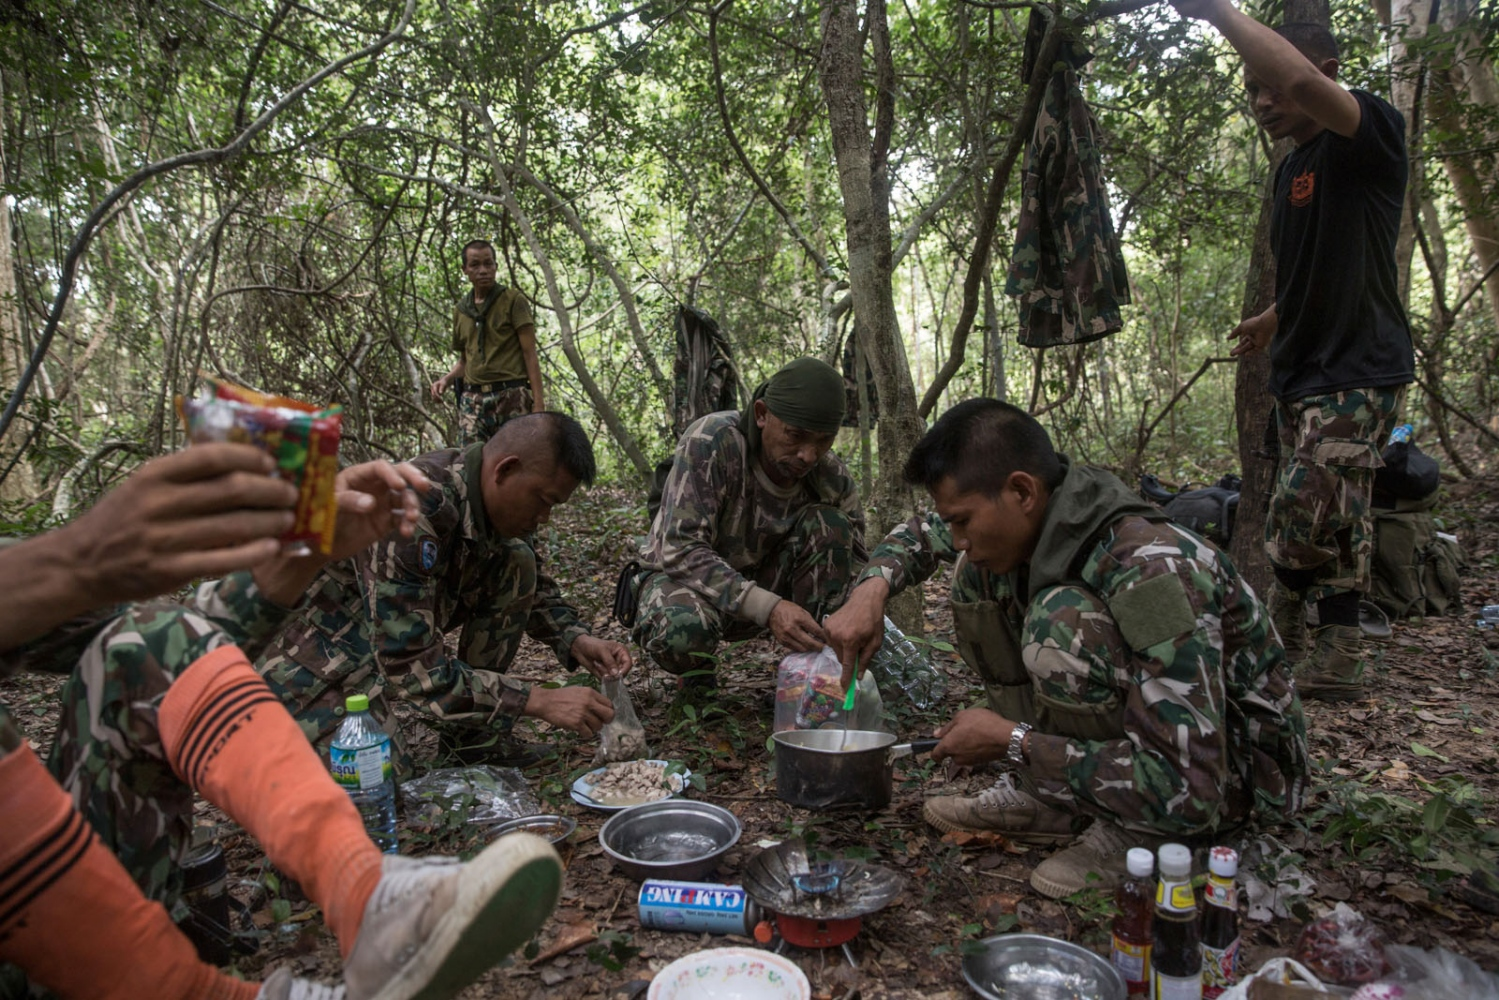 Thai forest rangers break for lunch on a 3 day patrol. Ta Praya National Park, Sa Kaew Province - September 2018